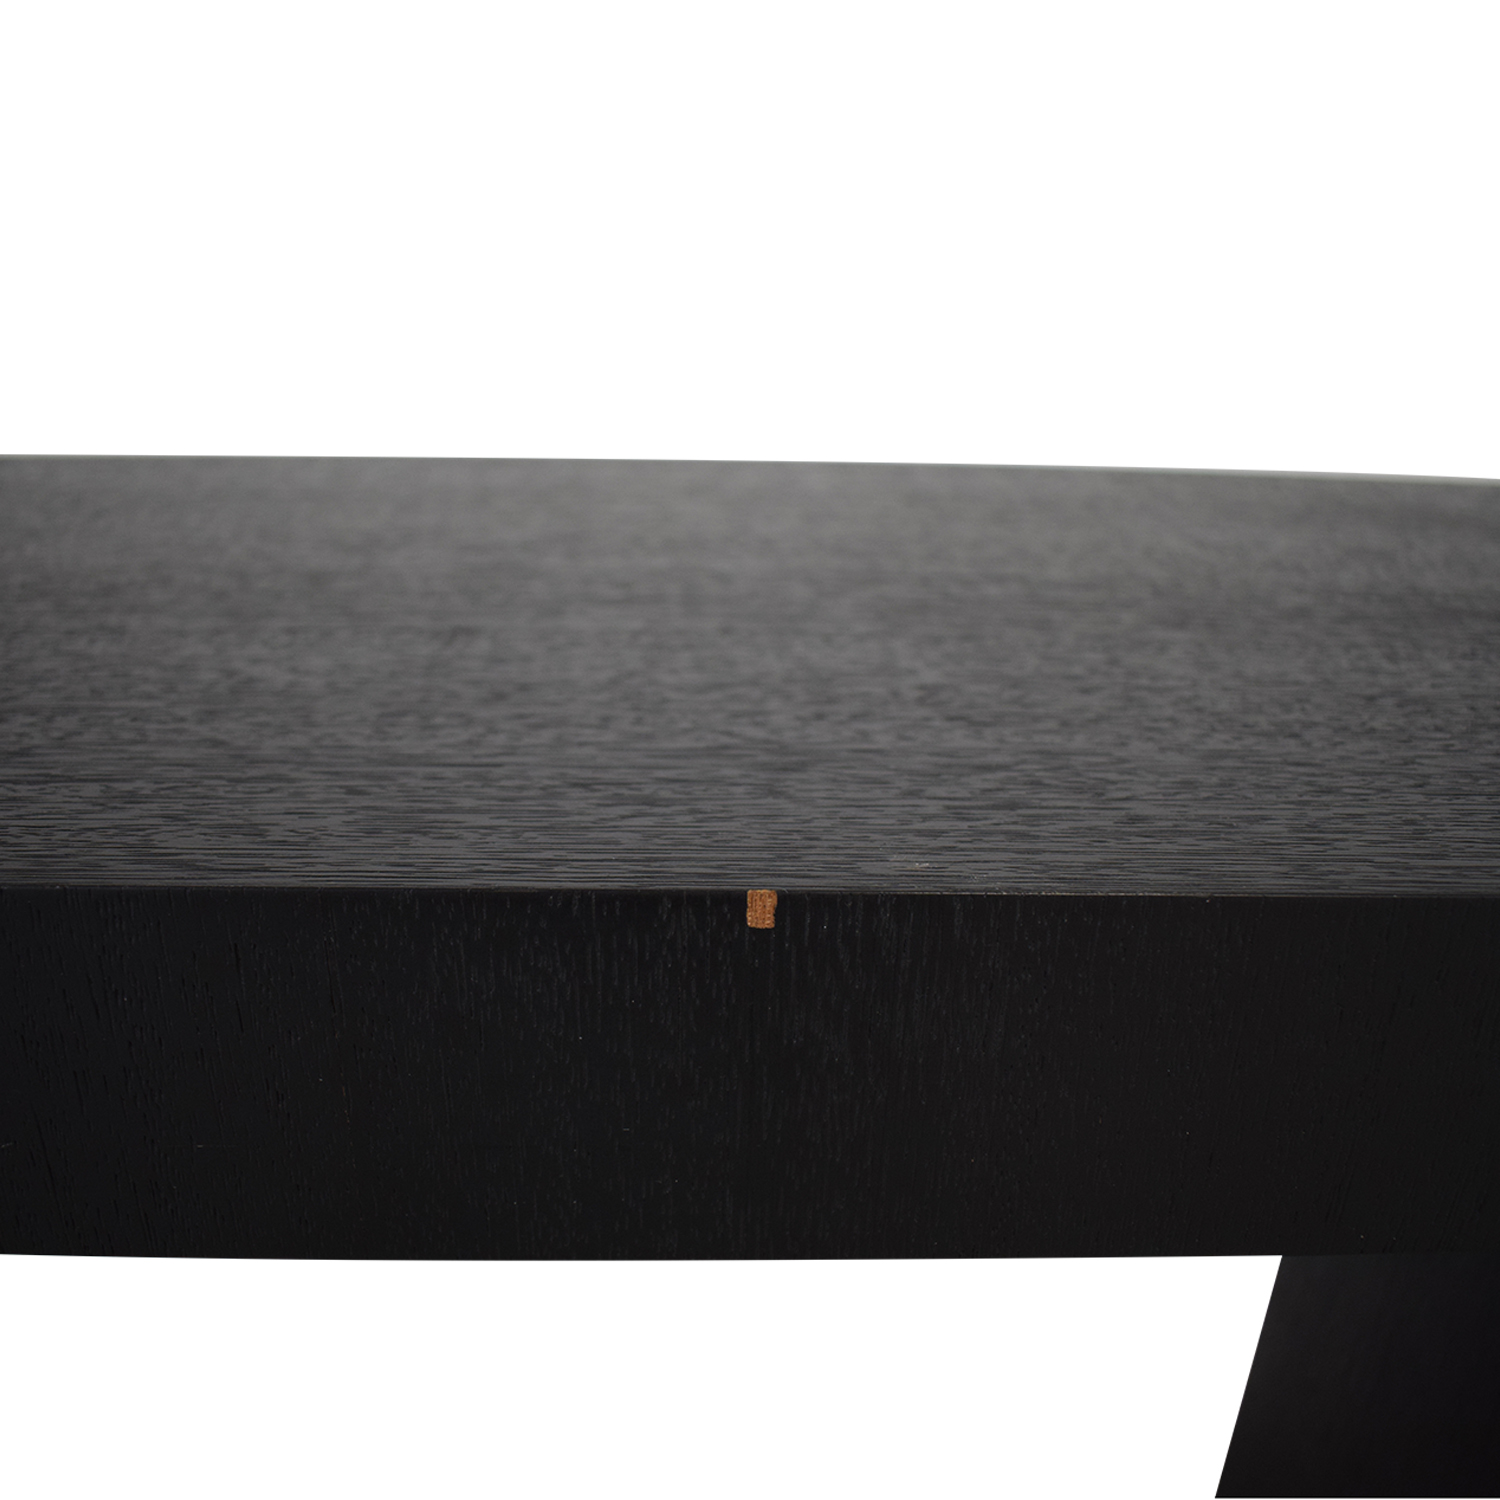 Armani Casa Armana Casa Seine Console Table used